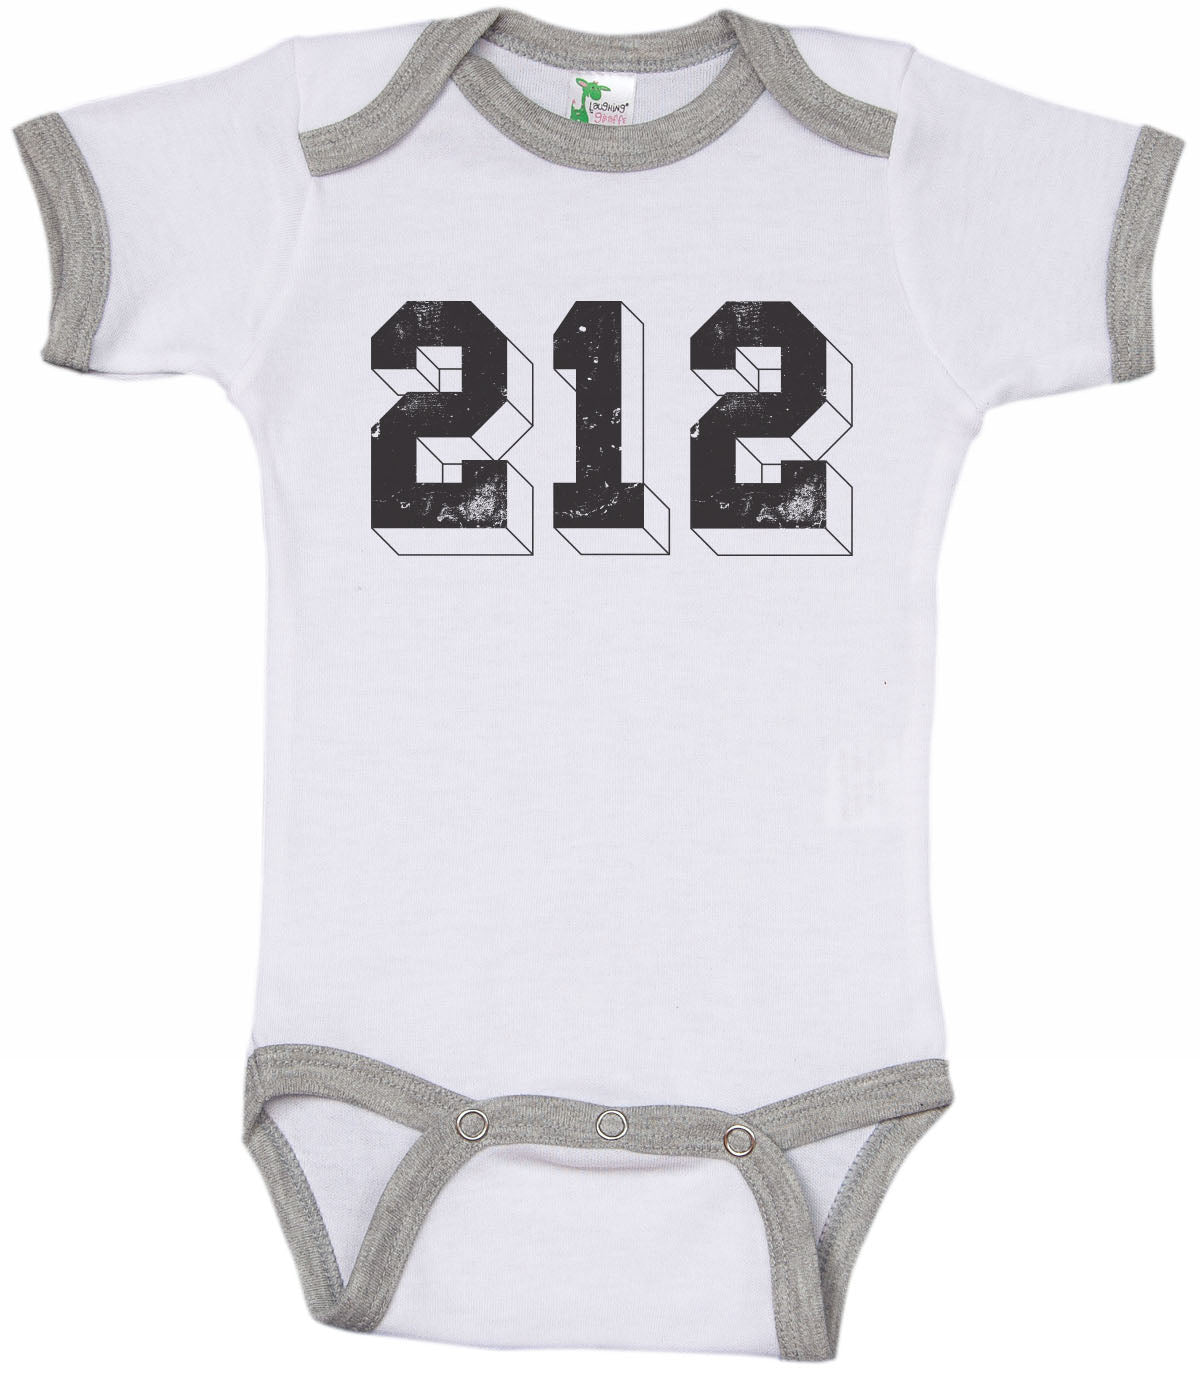 212 / New York Inspired Ringer Onesie